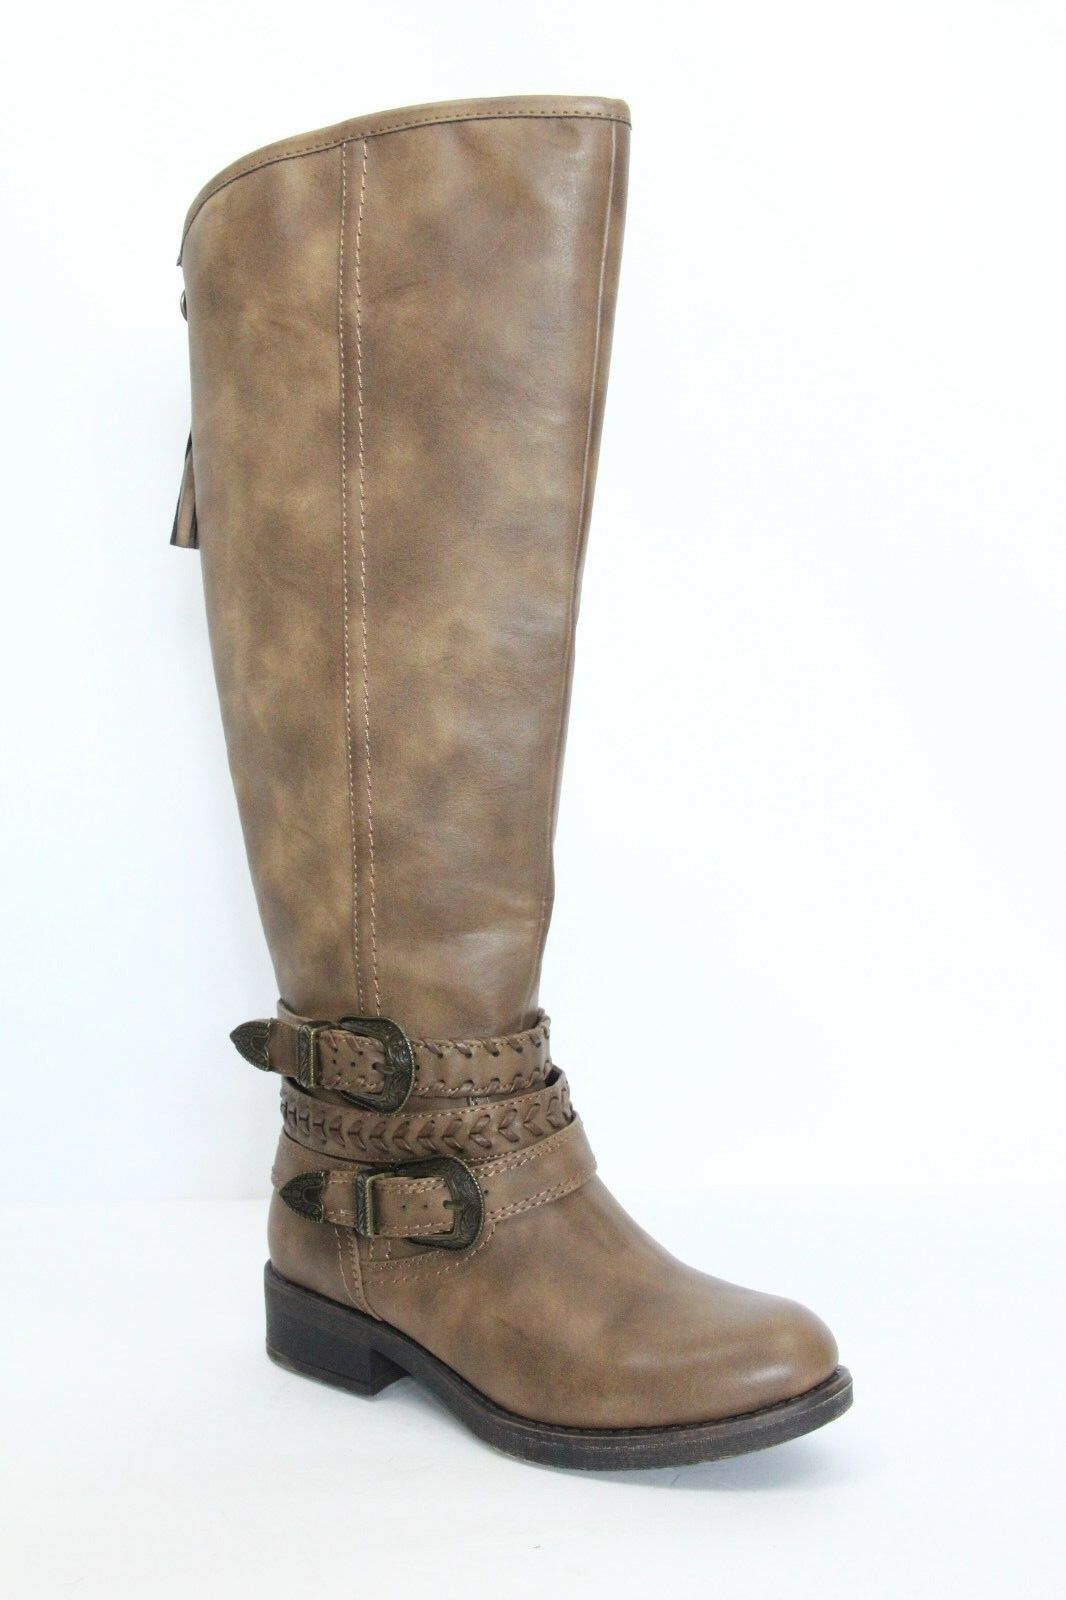 Madden Girl Knee High Boots Western sz 6 Faux Leather Brown NEW Riding shoes